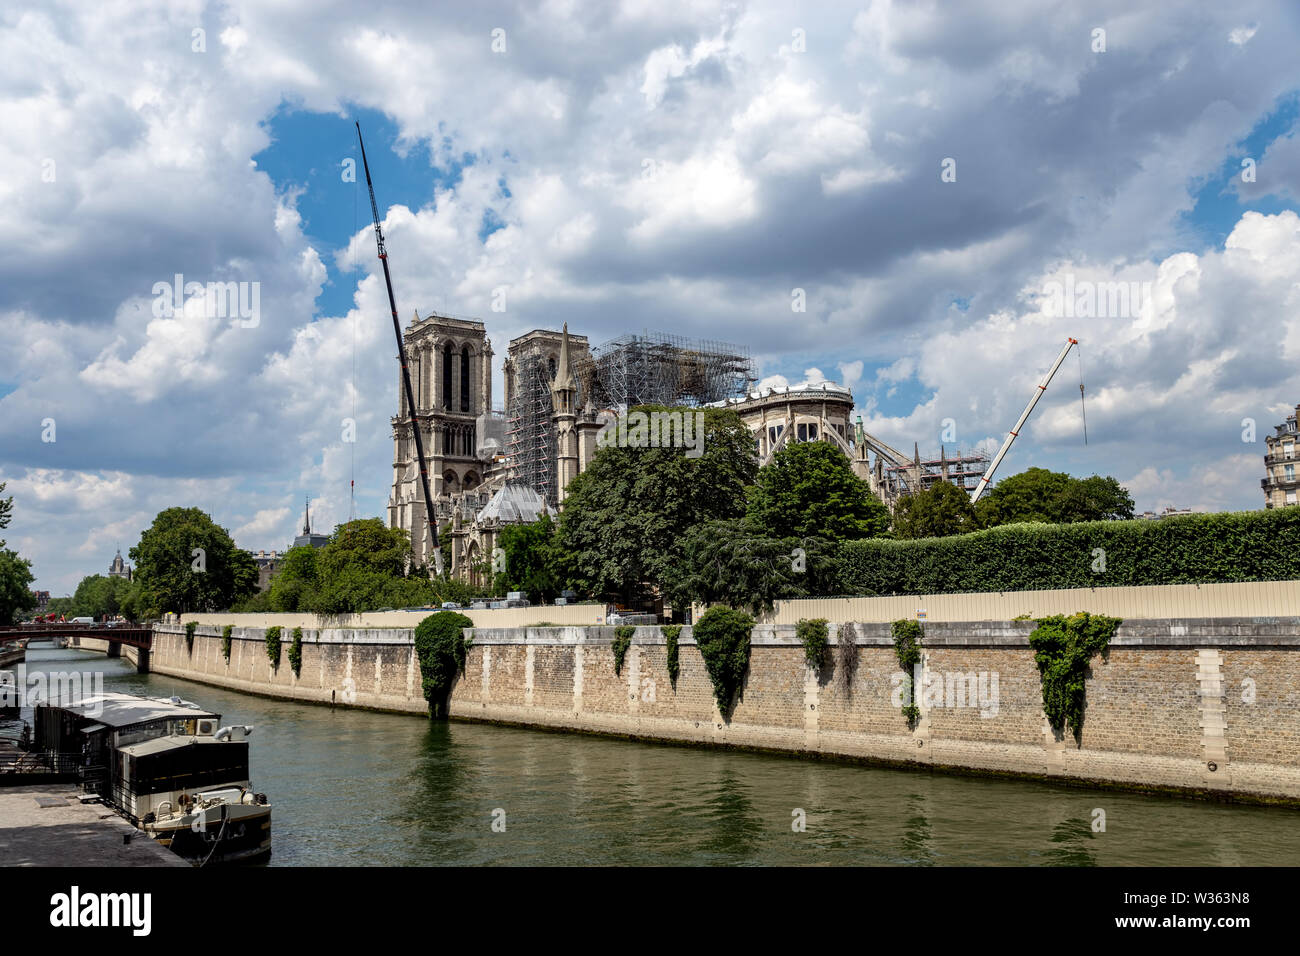 Notre Dame de Paris: Reinforcement work in July 2019 after the fire - Stock Image